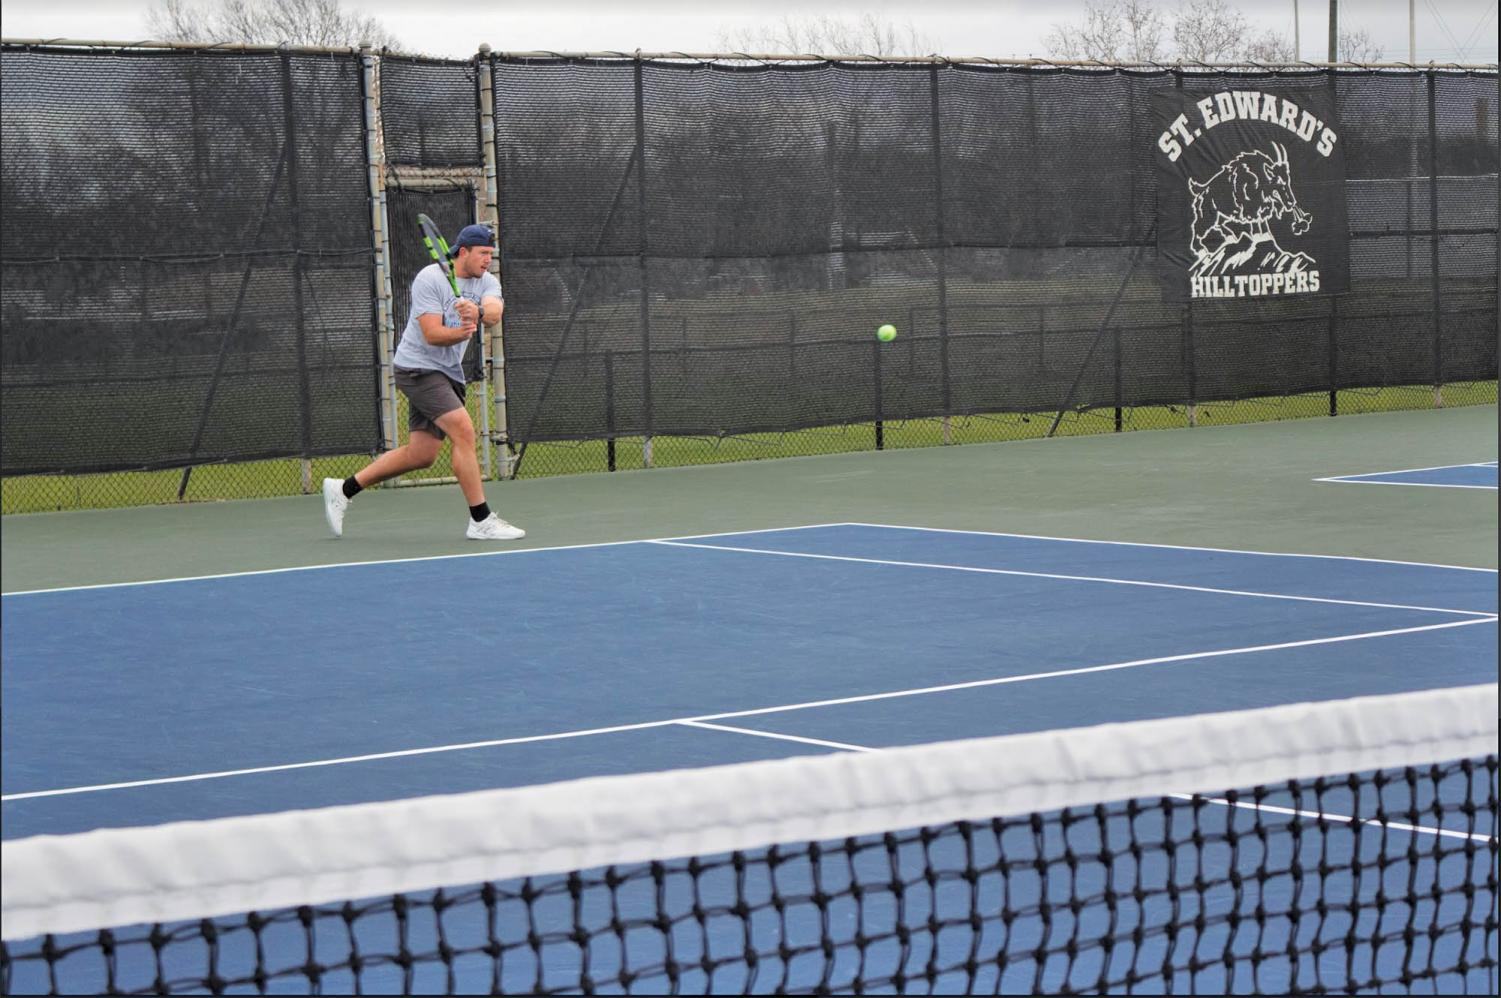 Senior Chase Morehouse currently has an SEU career 22-10 singles record.